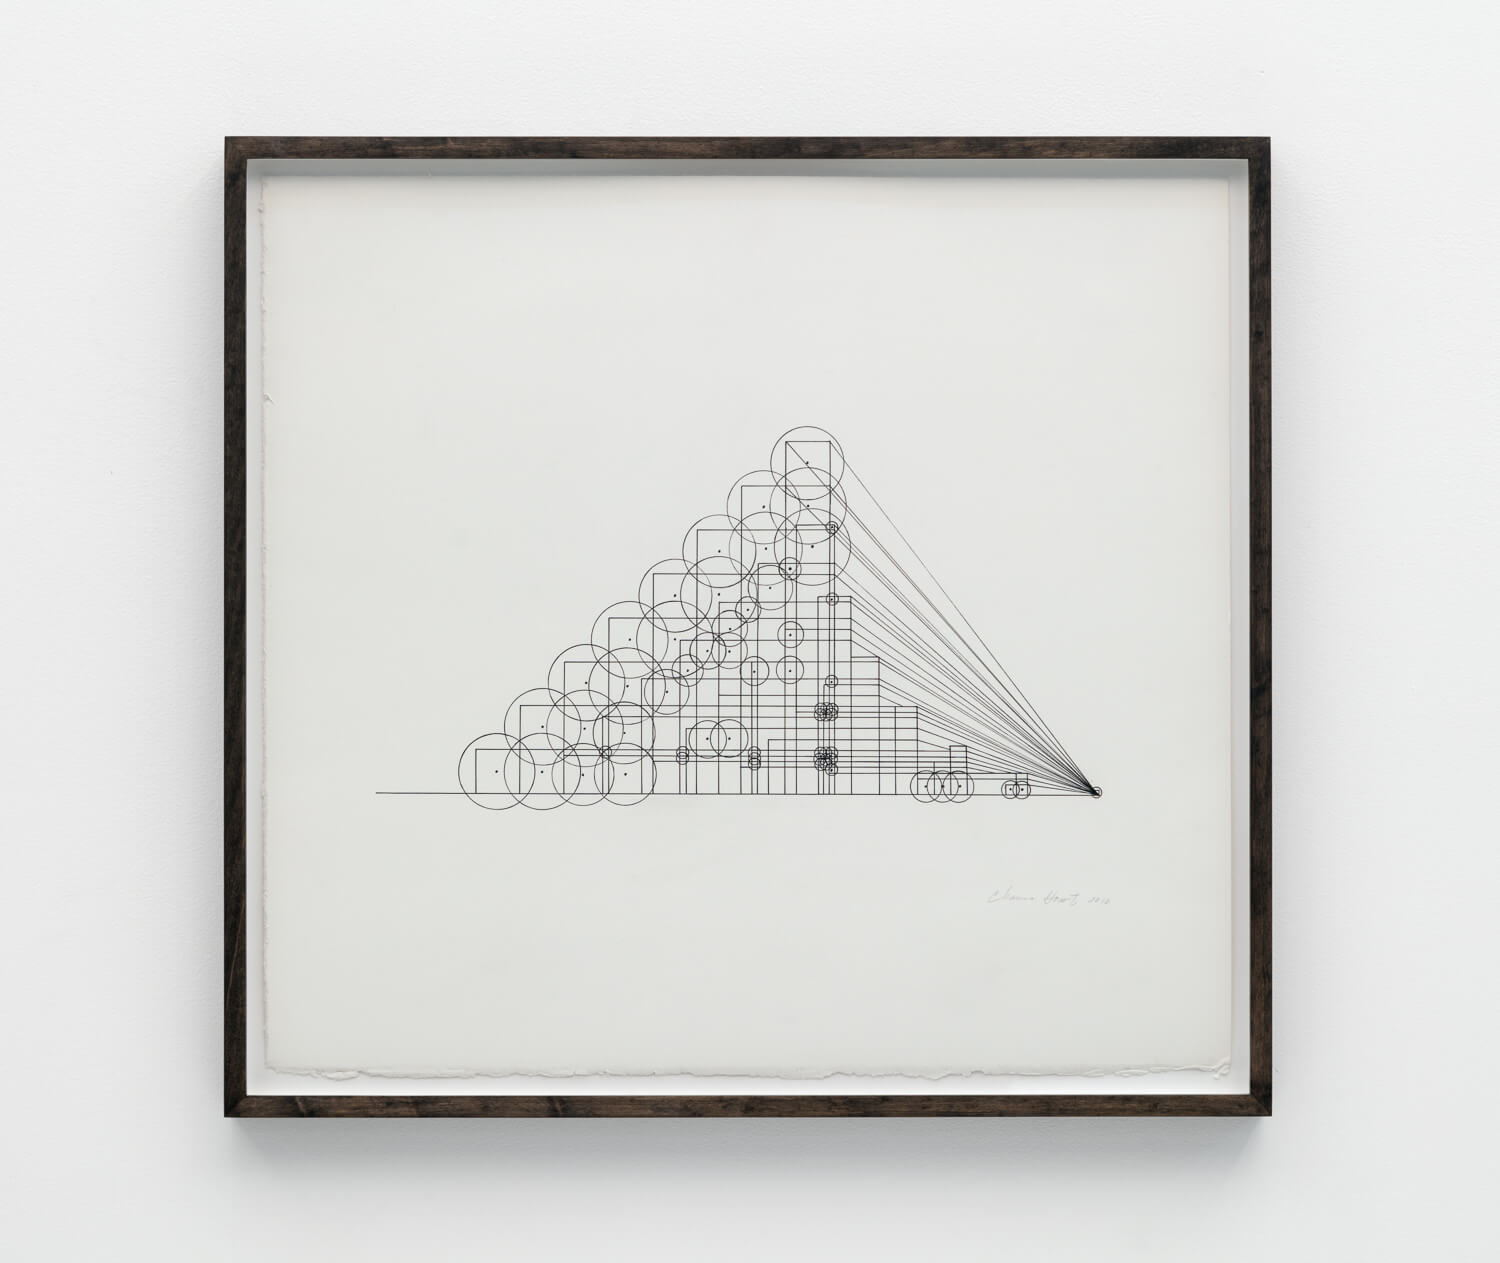 Horwitz, Untitled Structure, 2010 (CH 10.005)(#278)